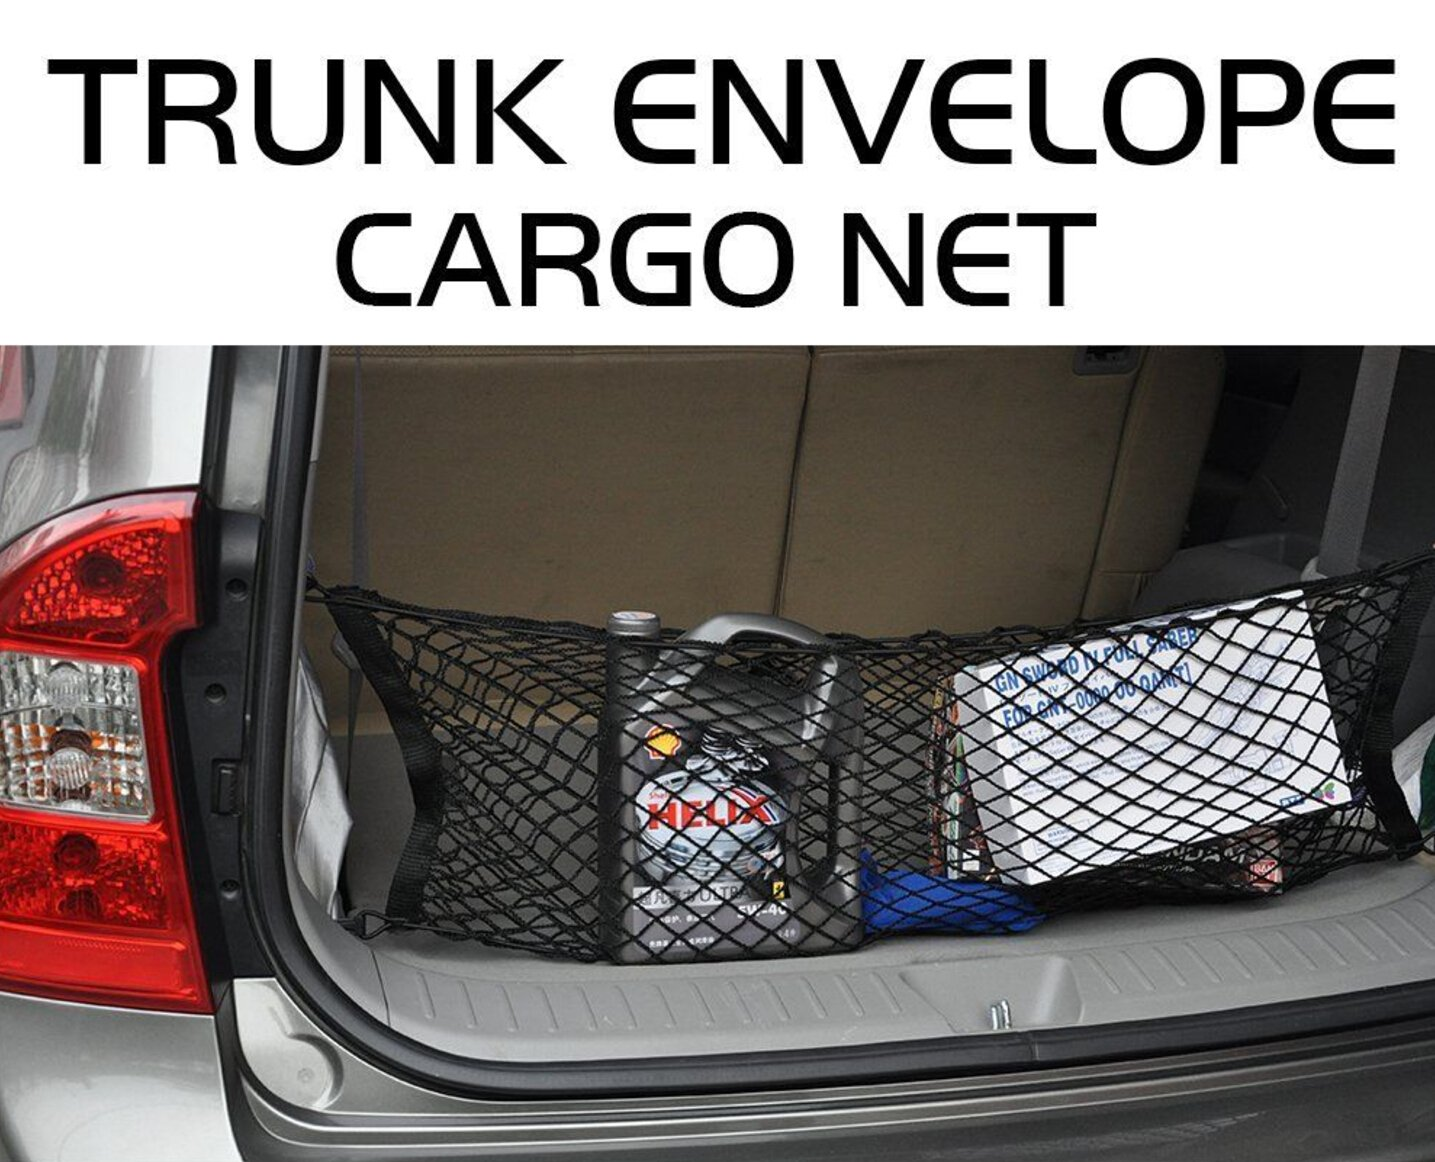 SUV Heavy Duty Cargo Net Stretchable Universal Adjustable Elastic Truck Net with Hooks Truck 9 MOON 4332990371 Storage Mesh Organizer Bungee for Car